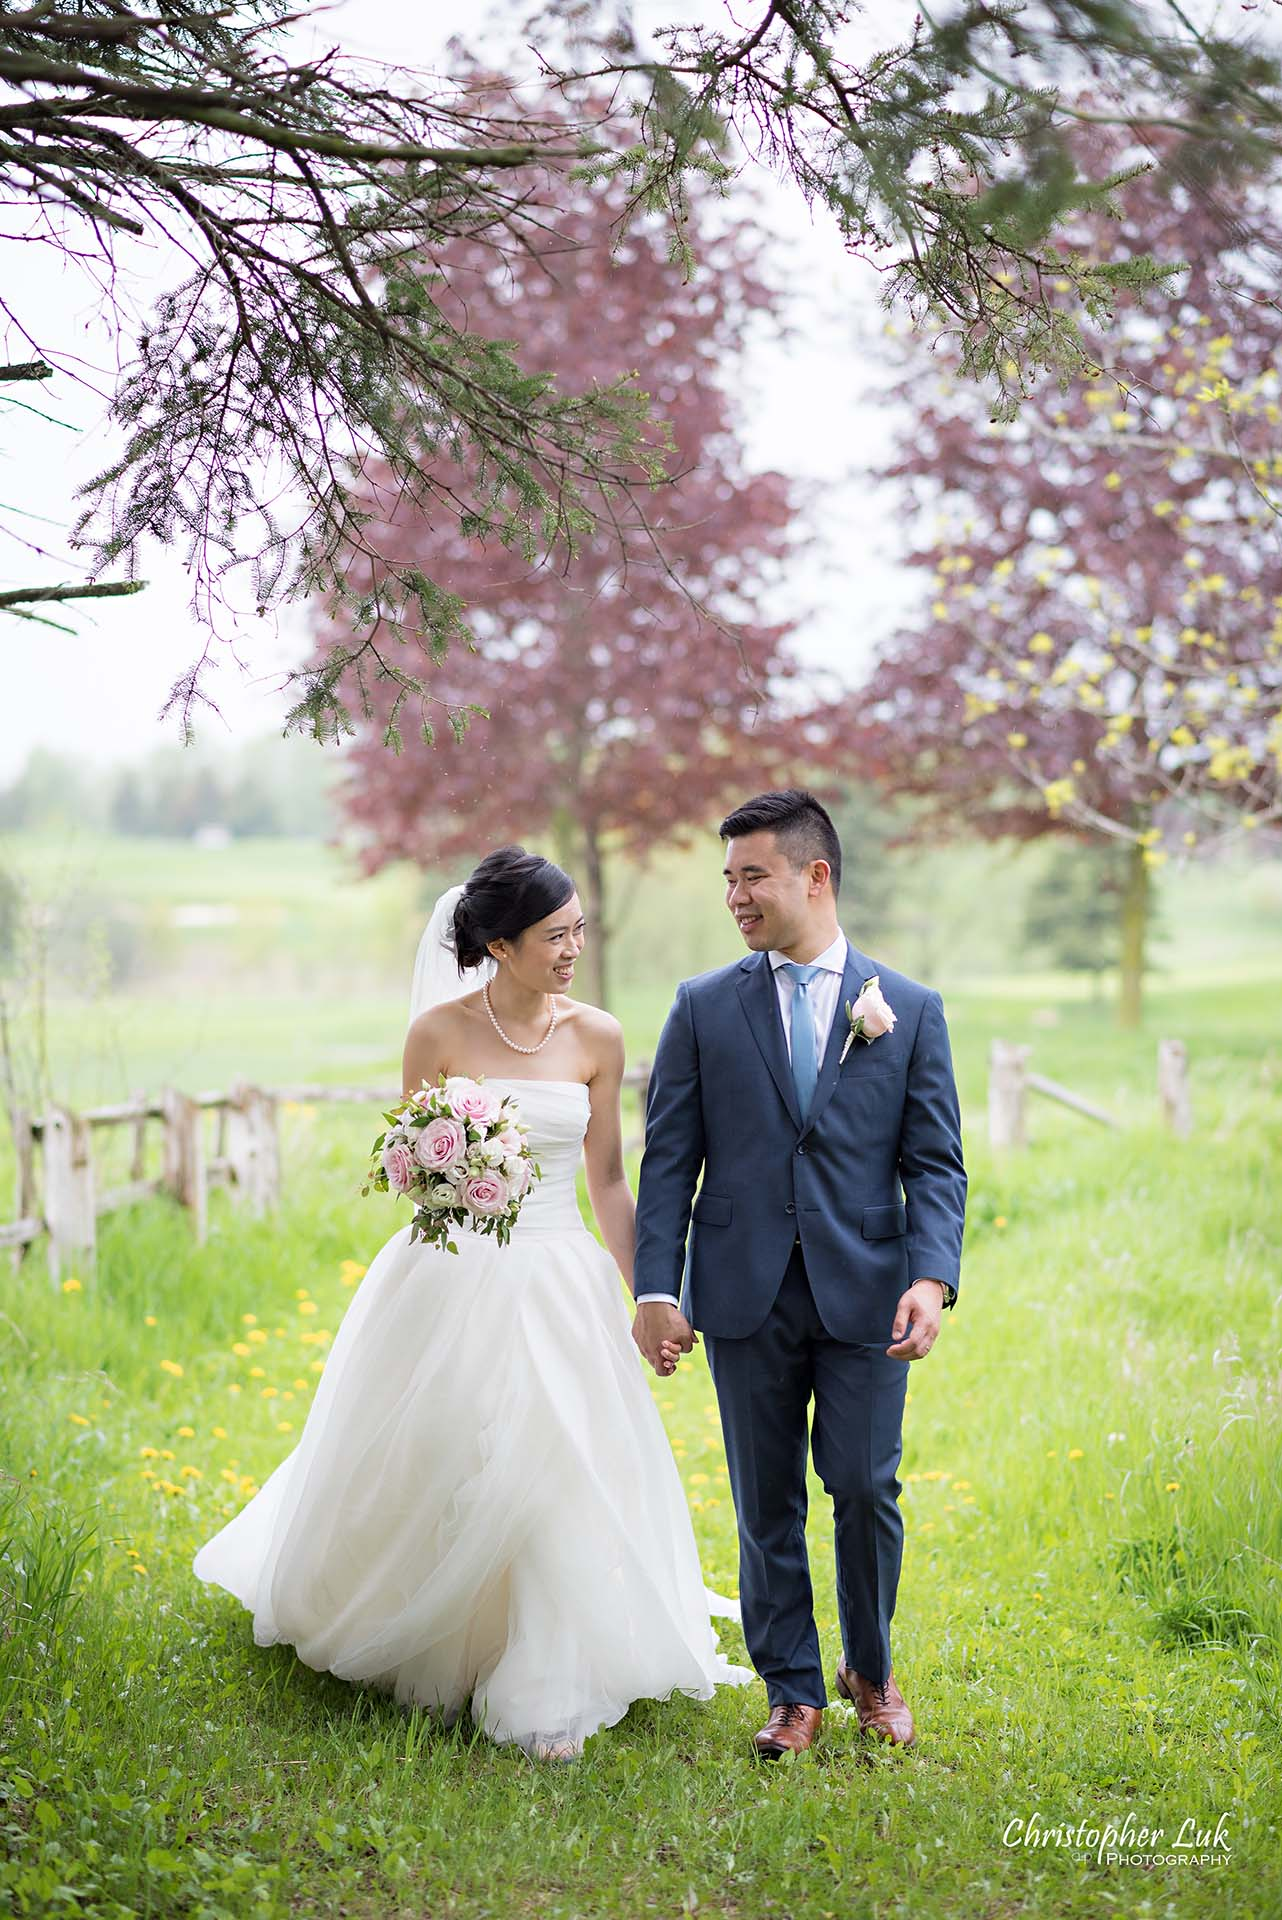 Christopher Luk Toronto Wedding Photographer Angus Glen Golf Club Markham Main Blue Barn Farm Historic Estate Building Together Natural Candid Photojournalistic Bride Groom Holding Hands Together Walking Green Grass Pathway Portrait